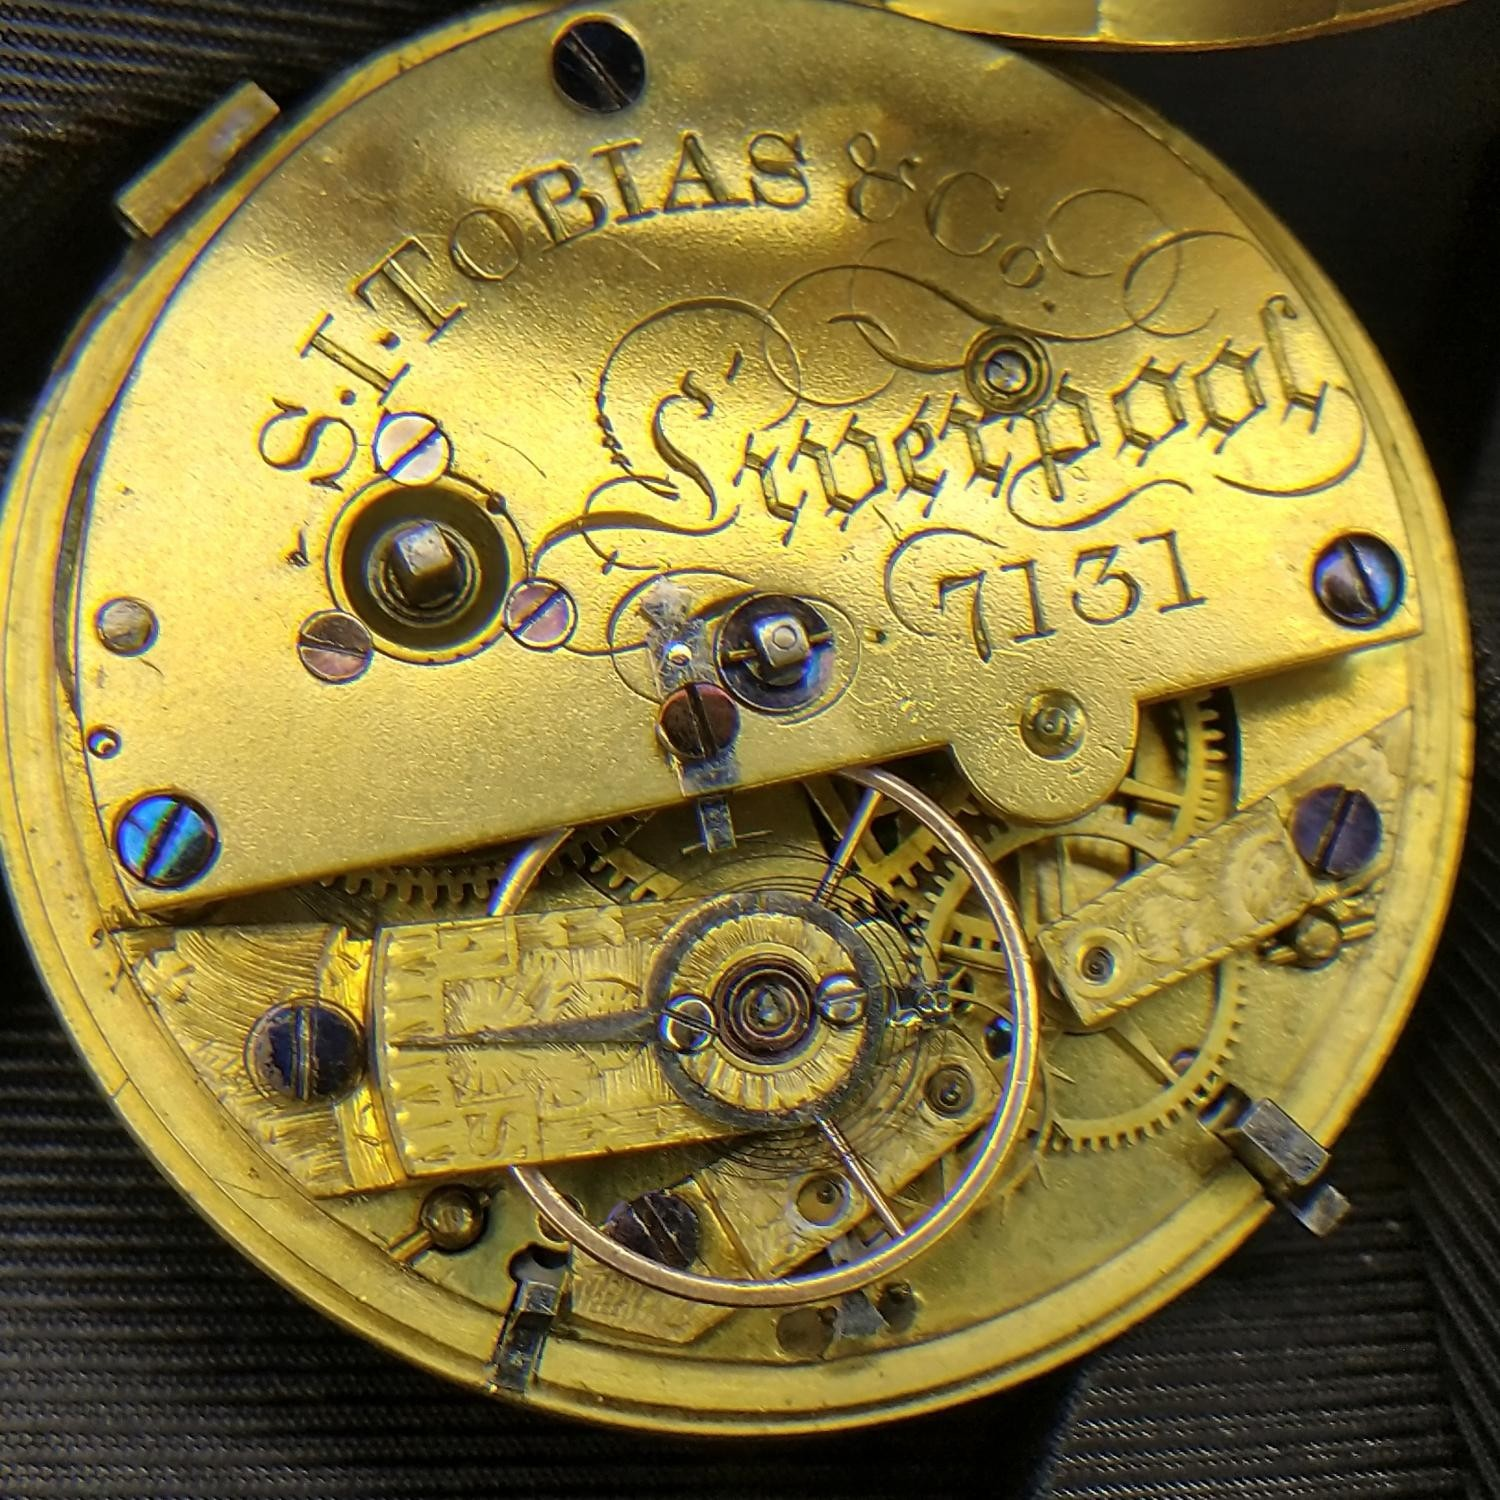 Image of Other S.I. TOBIAS & Co. Mid 1800's #7131 Movement